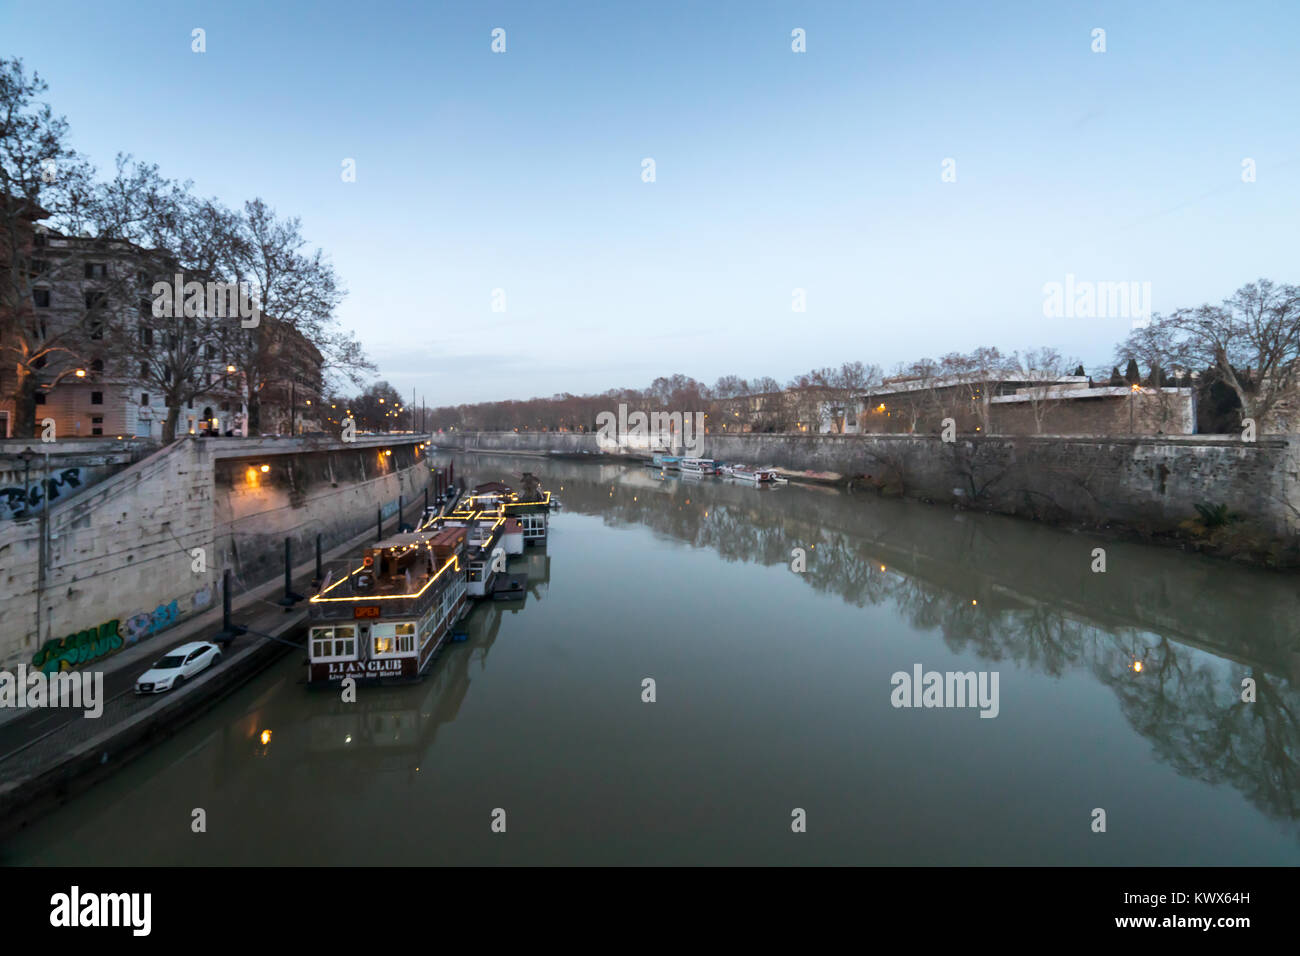 Rome, Italy - December 31, 2017: The Tiber river with some boats moored on the banks of the river, in a panoramic - Stock Image